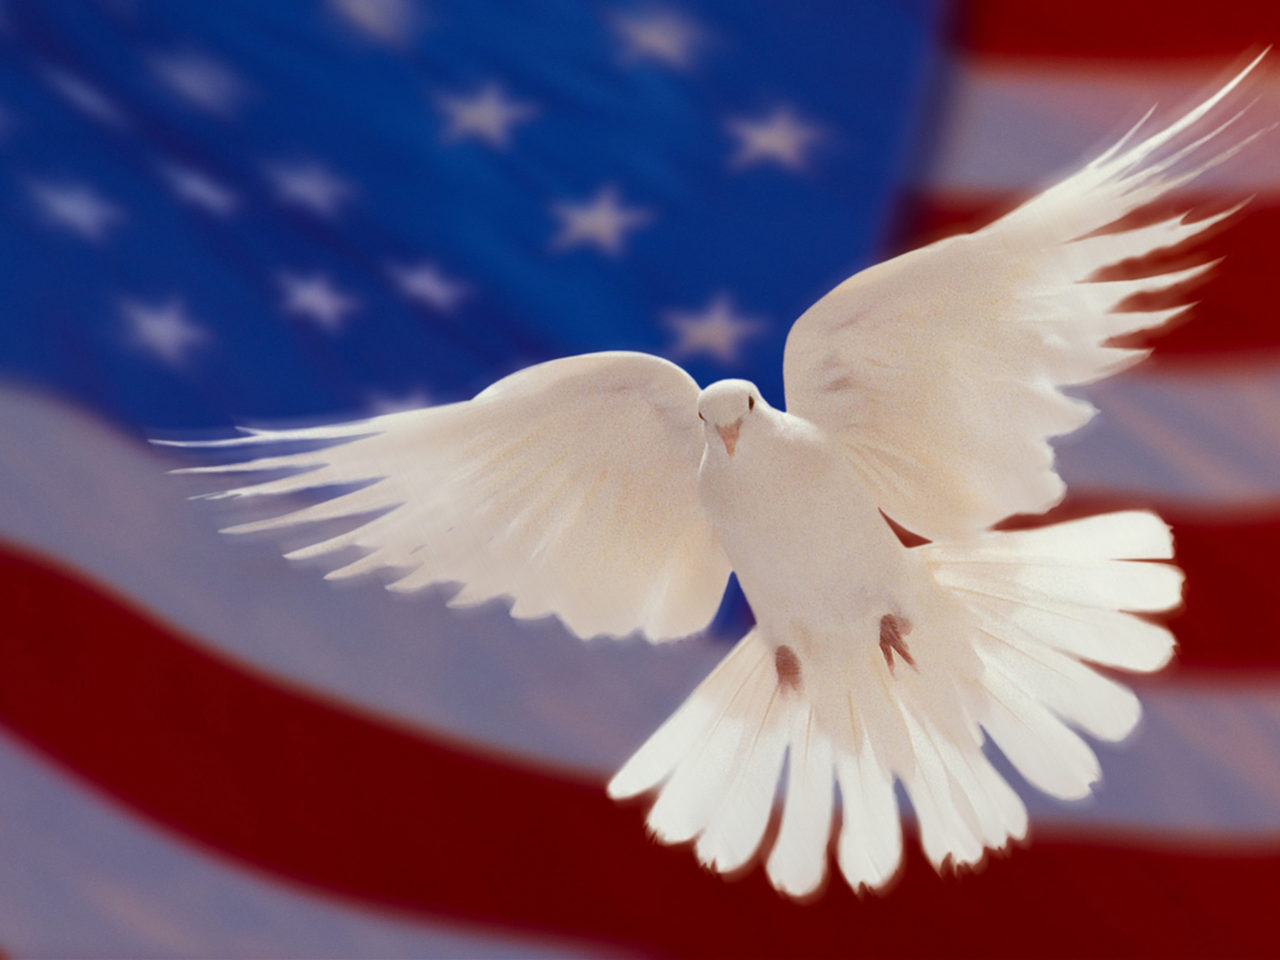 Lock Screen Wallpaper Hd American Flag And White Dove Of Peace Hd Wallpapers For